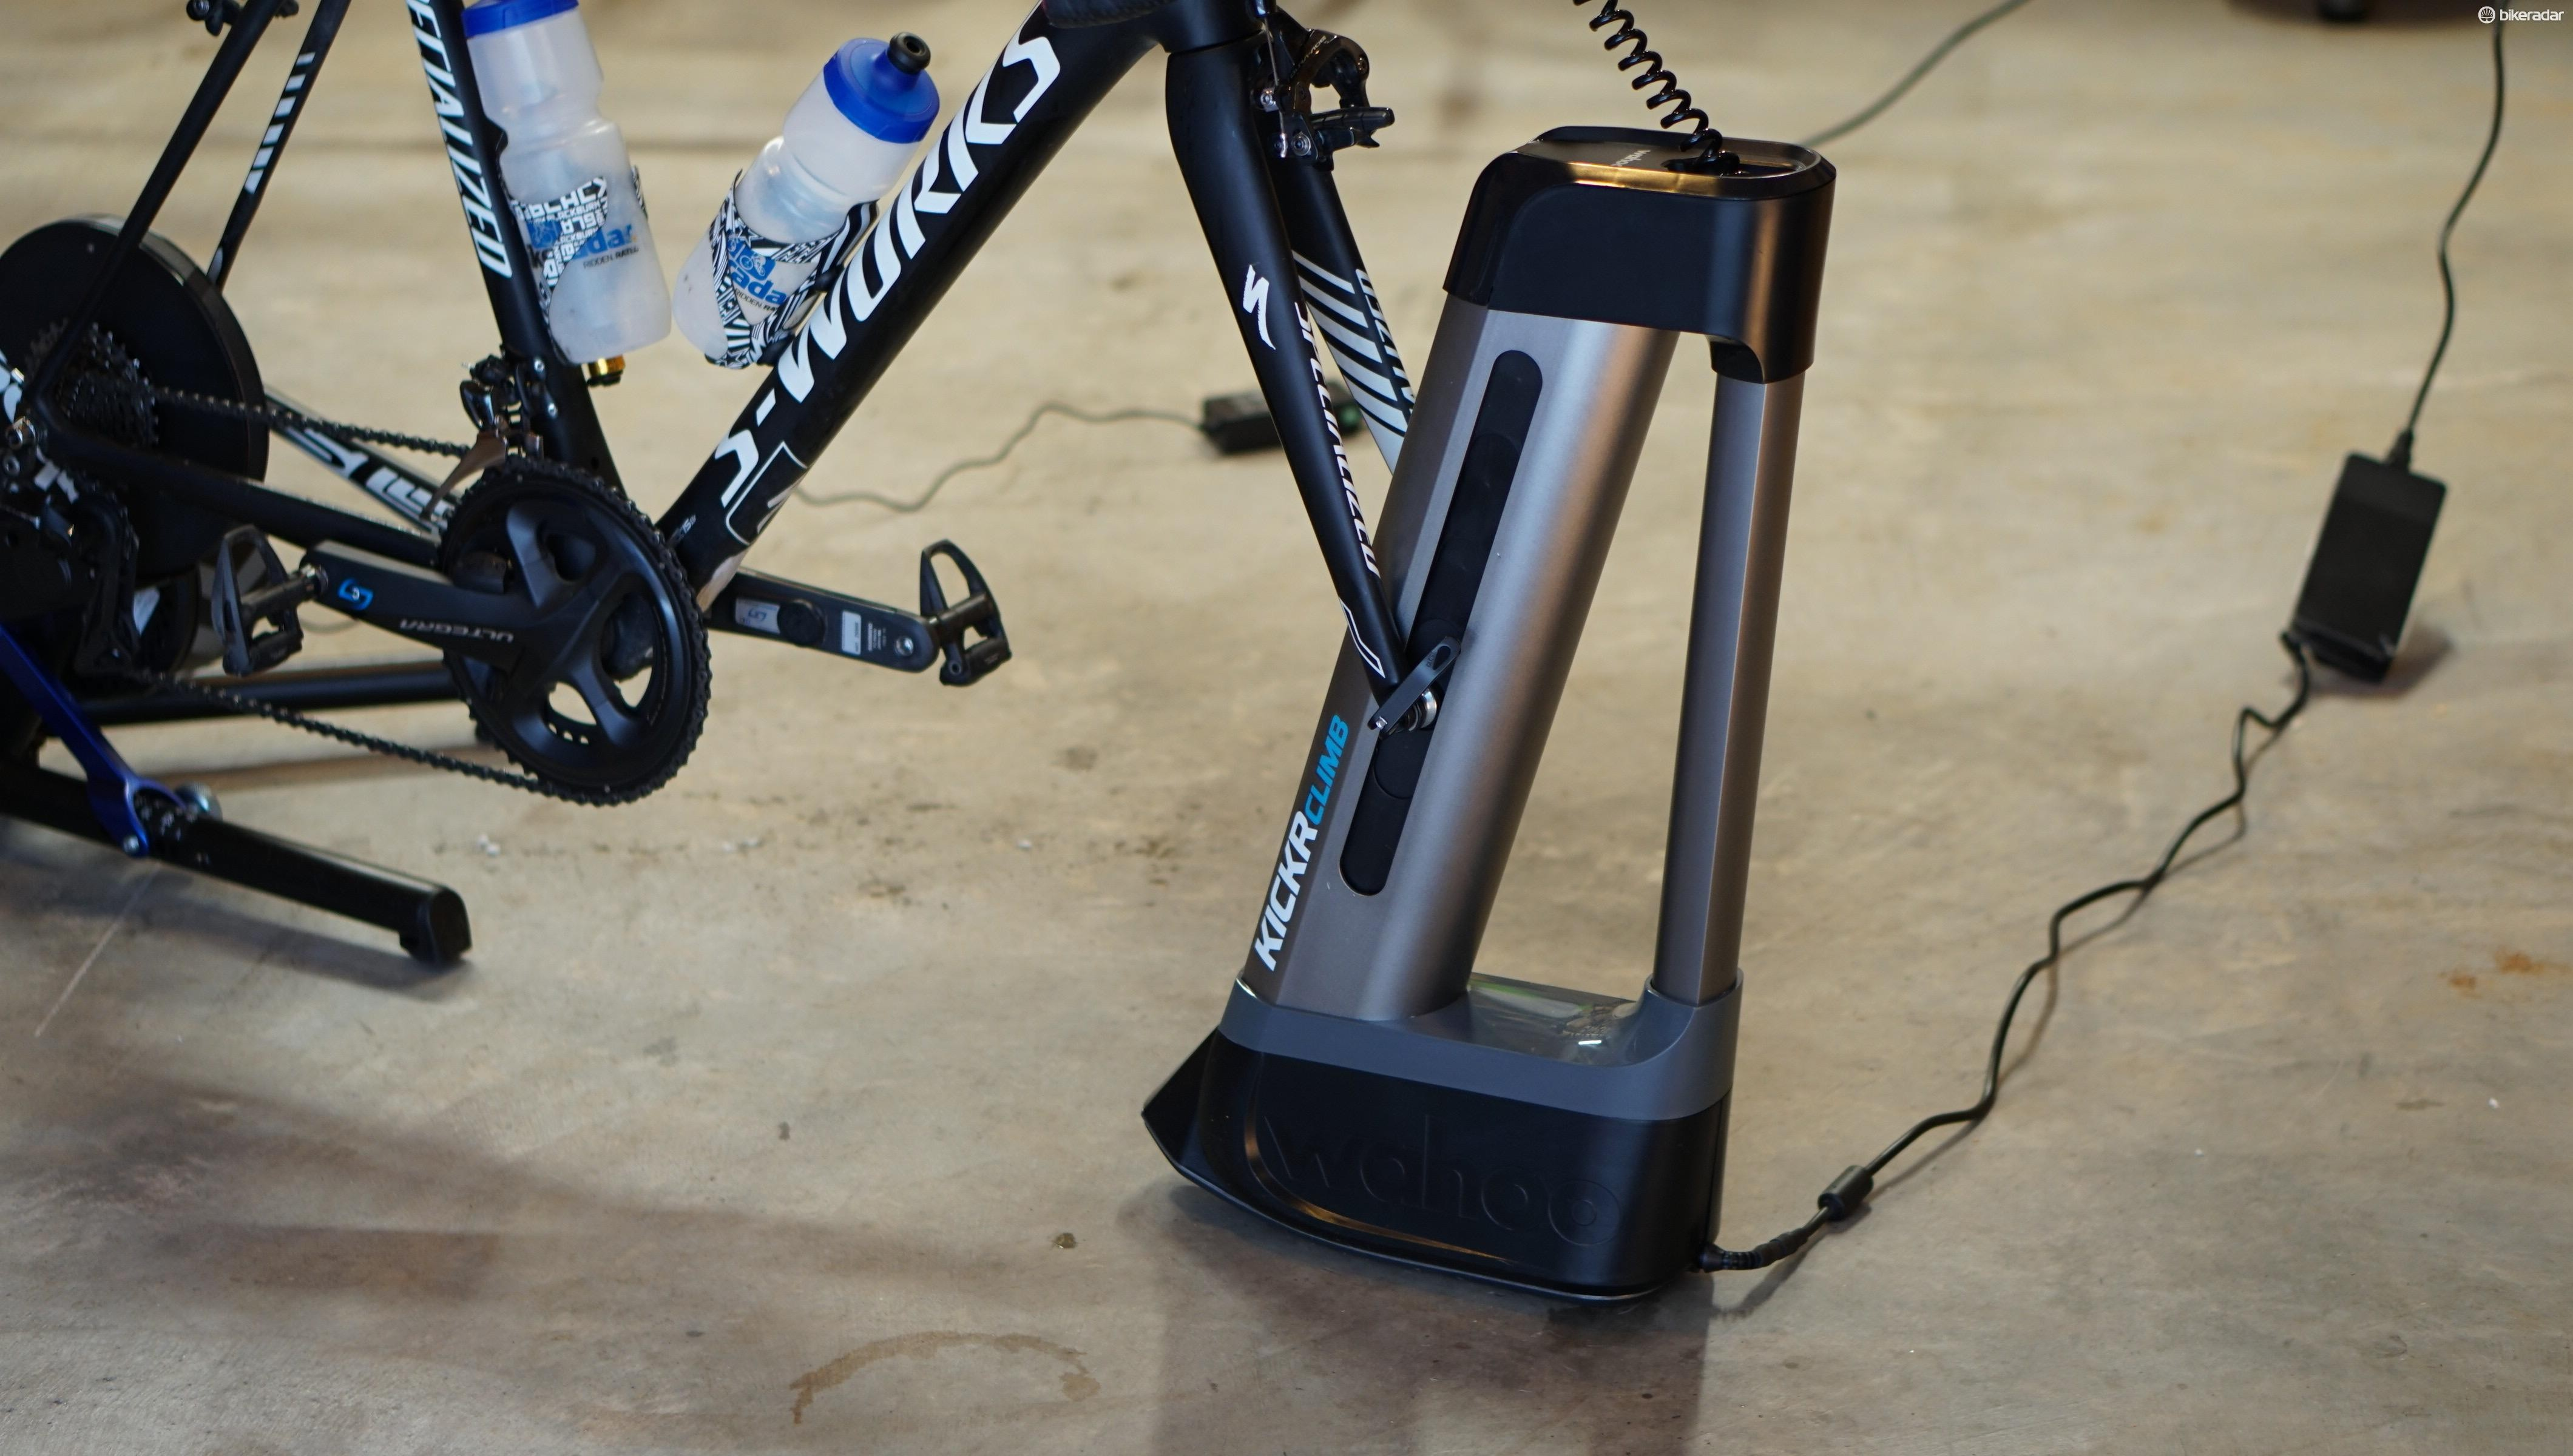 The Climb is stable enough to climb out of the saddle. Most of that stability comes from the solid anchoring of the bike at the dropouts on the Kickr